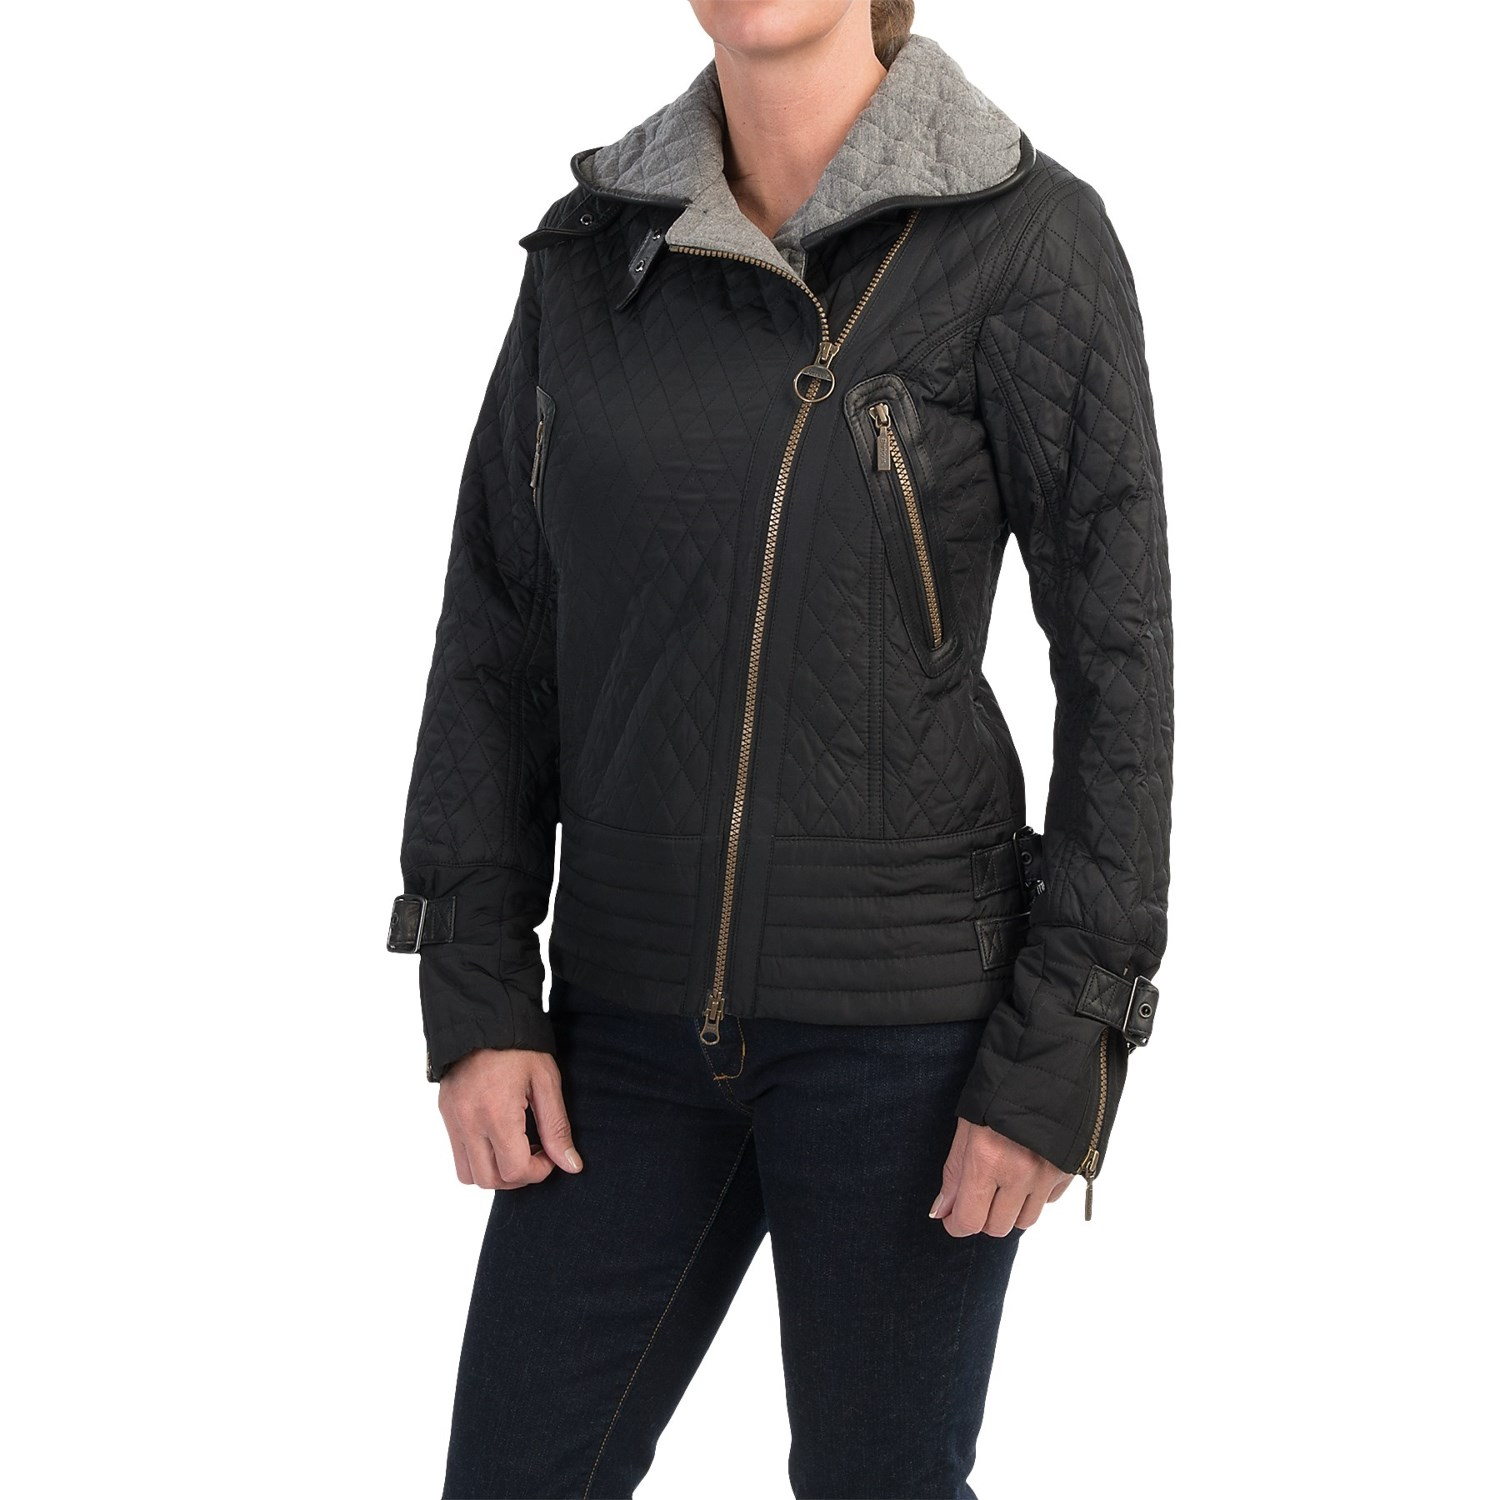 Barbour Blackwatch Quilted Jacket (For Women) in Black/Grey. Click to expand